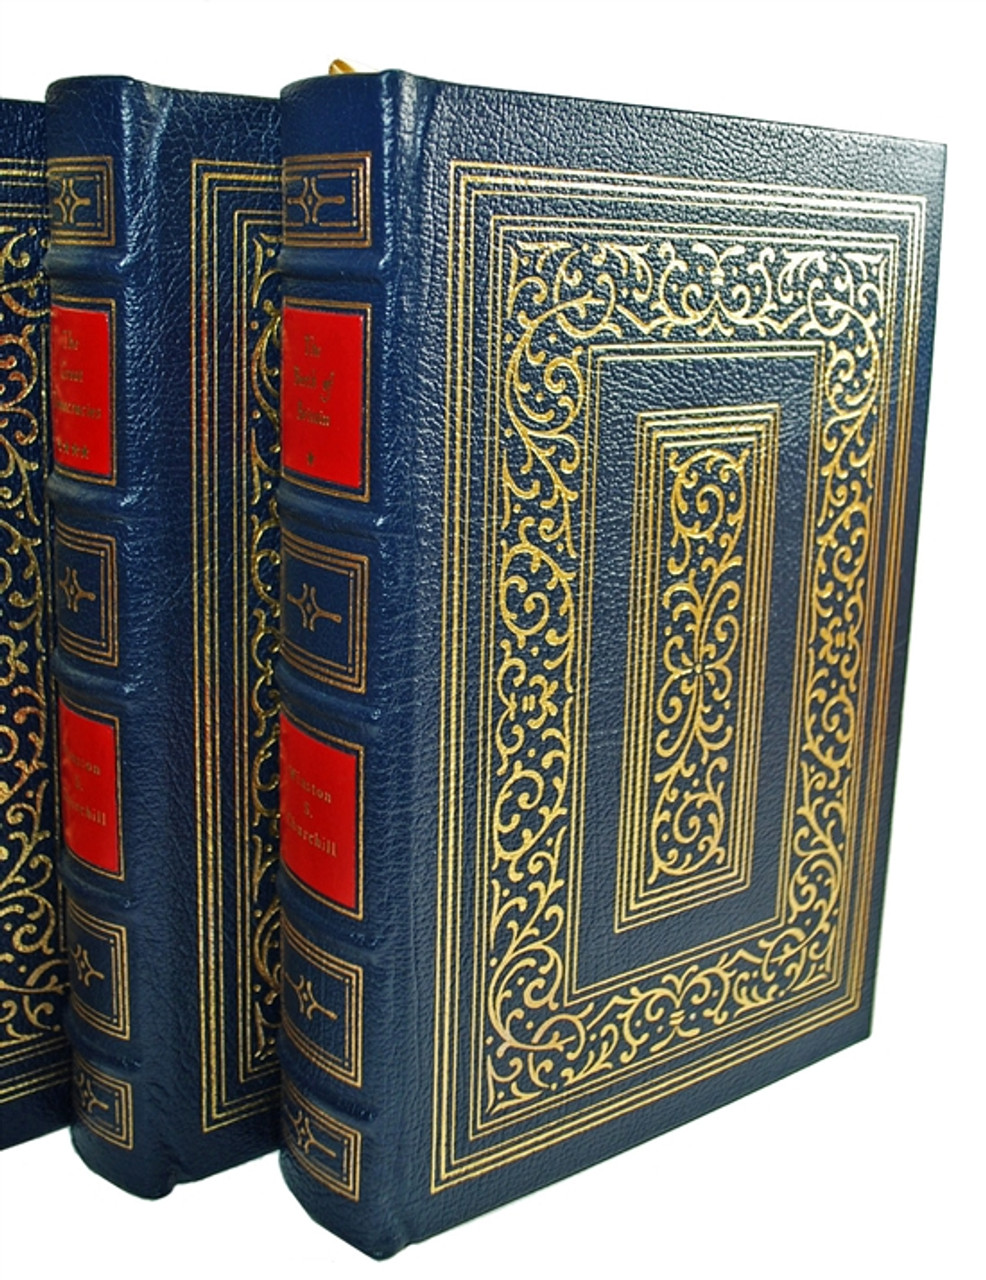 """Easton Press, Winston S. Churchill  """"A History of the English Speaking Peoples"""" Limited Collector's Edition, Complete Matching Set, 4 Vols (Very Fine)"""